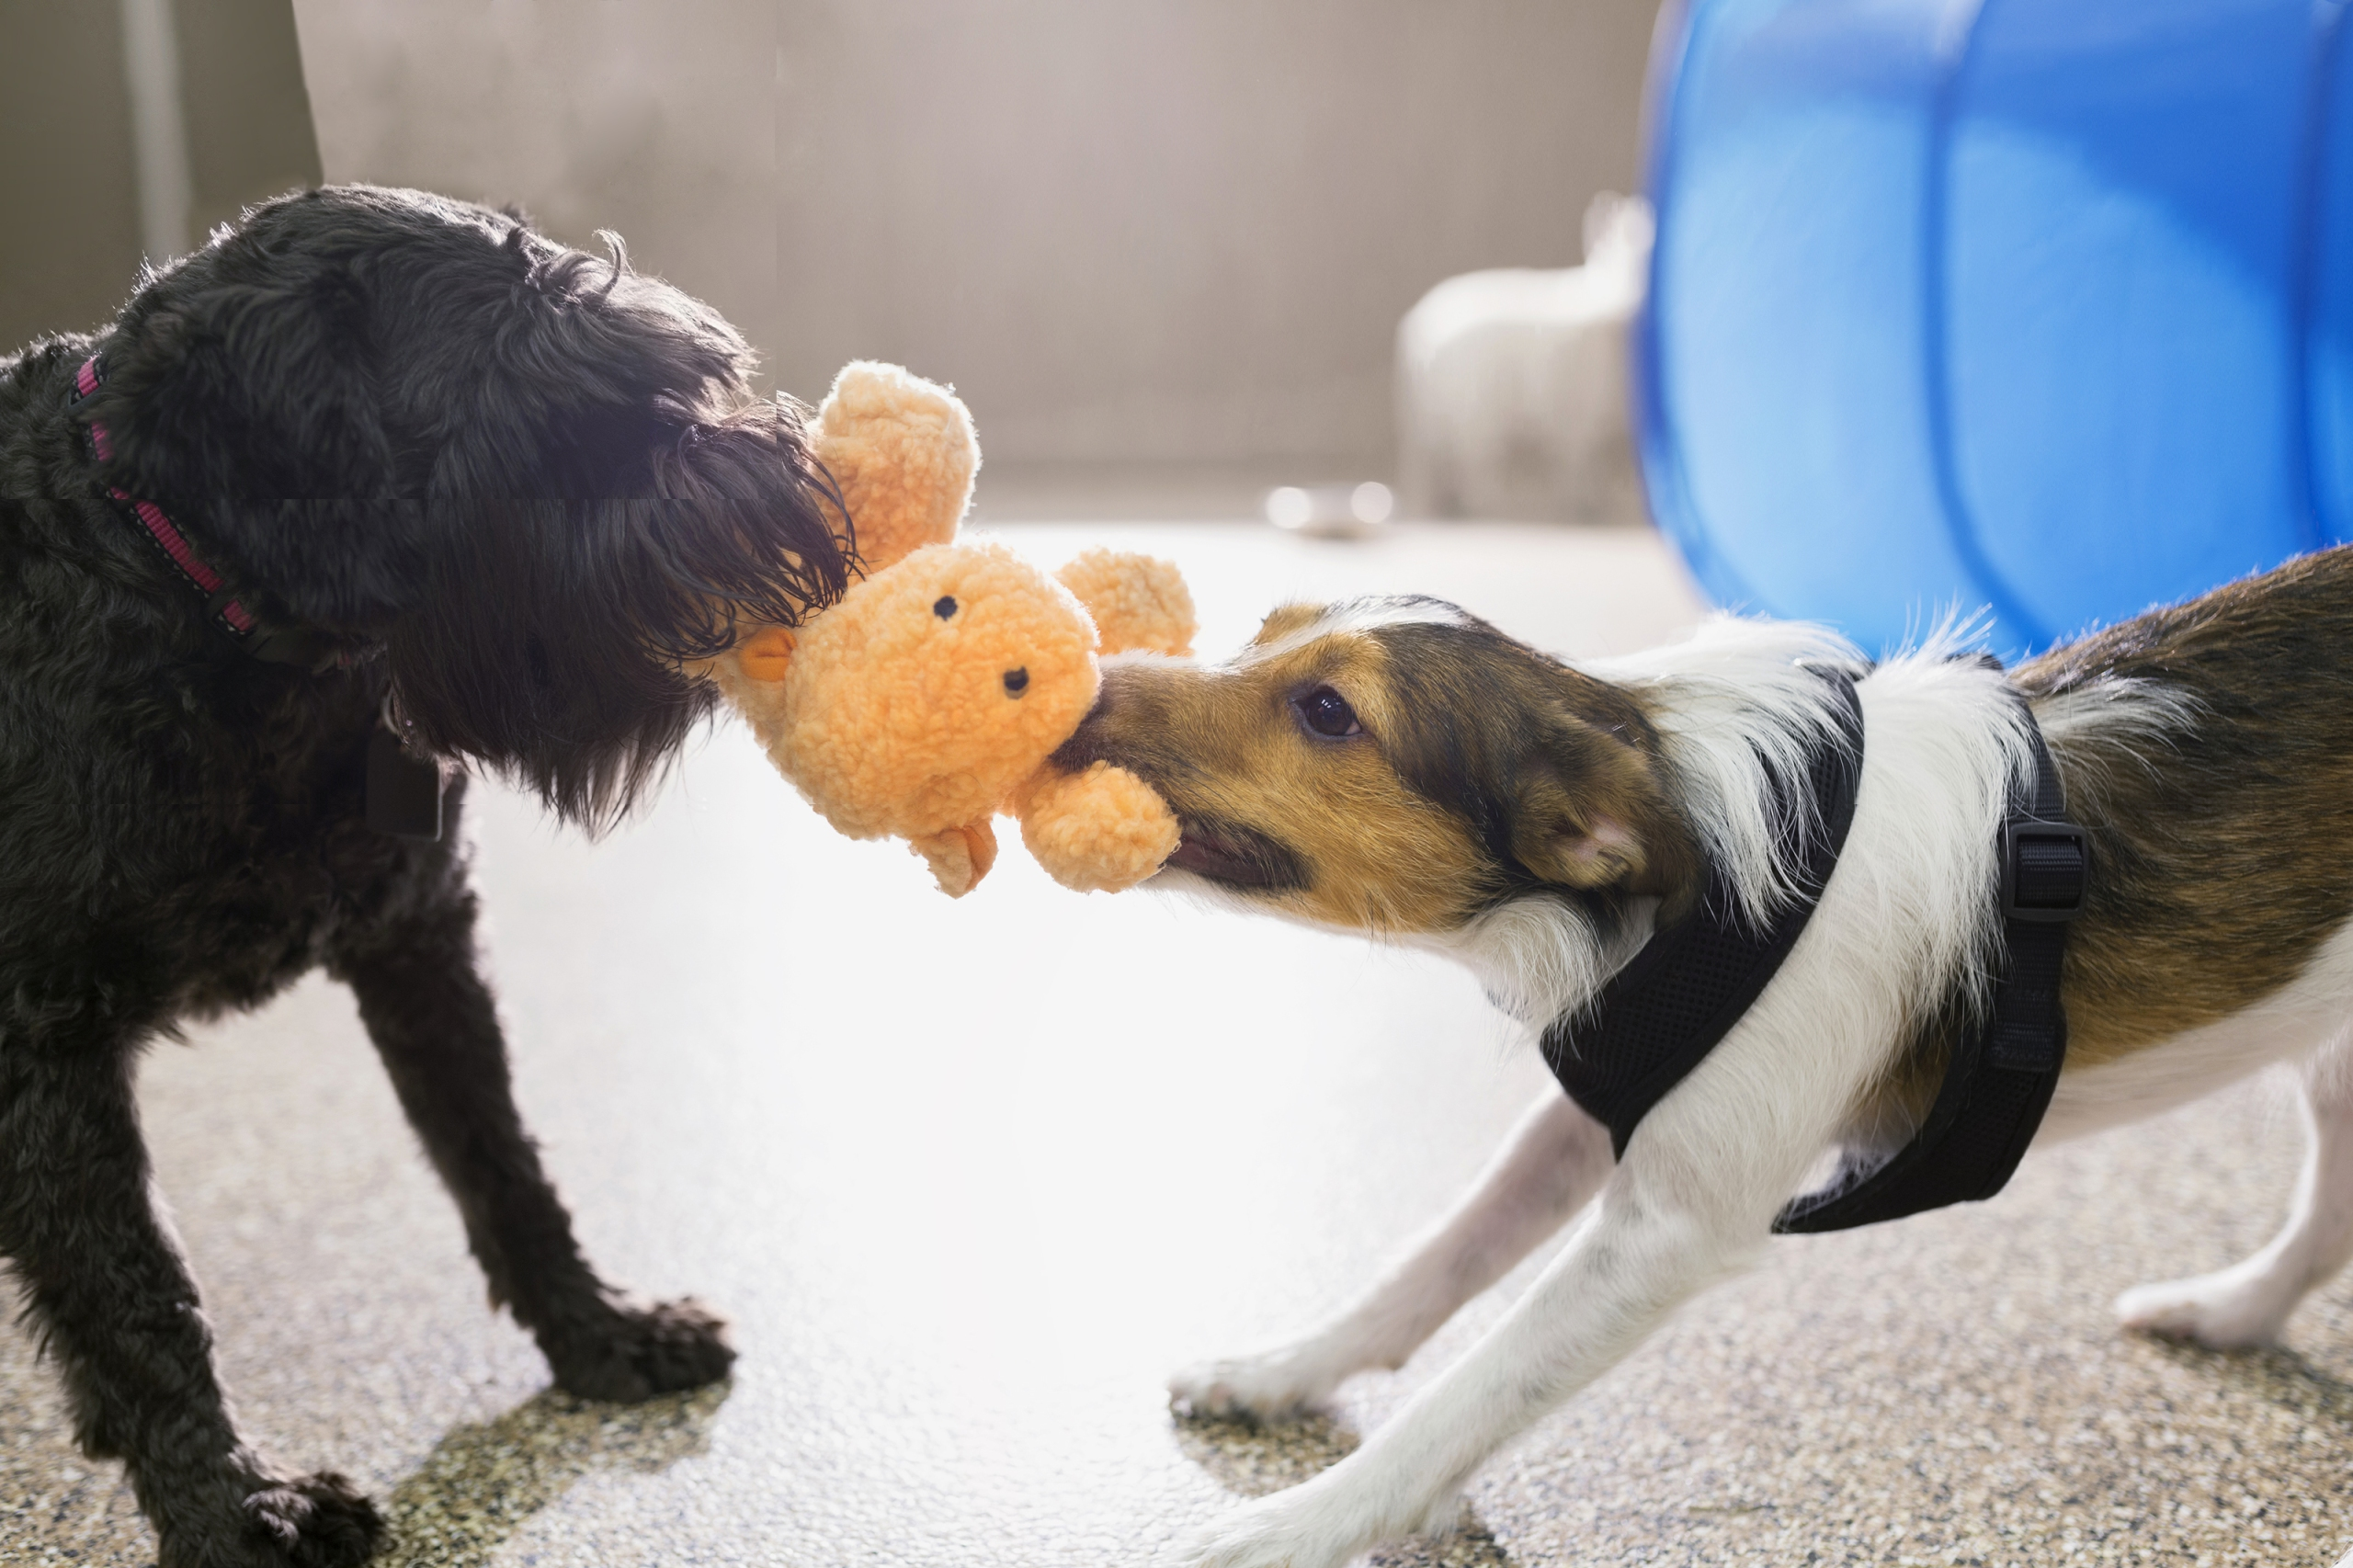 Two dogs fighting over a stuffed animal | Negotiating house price